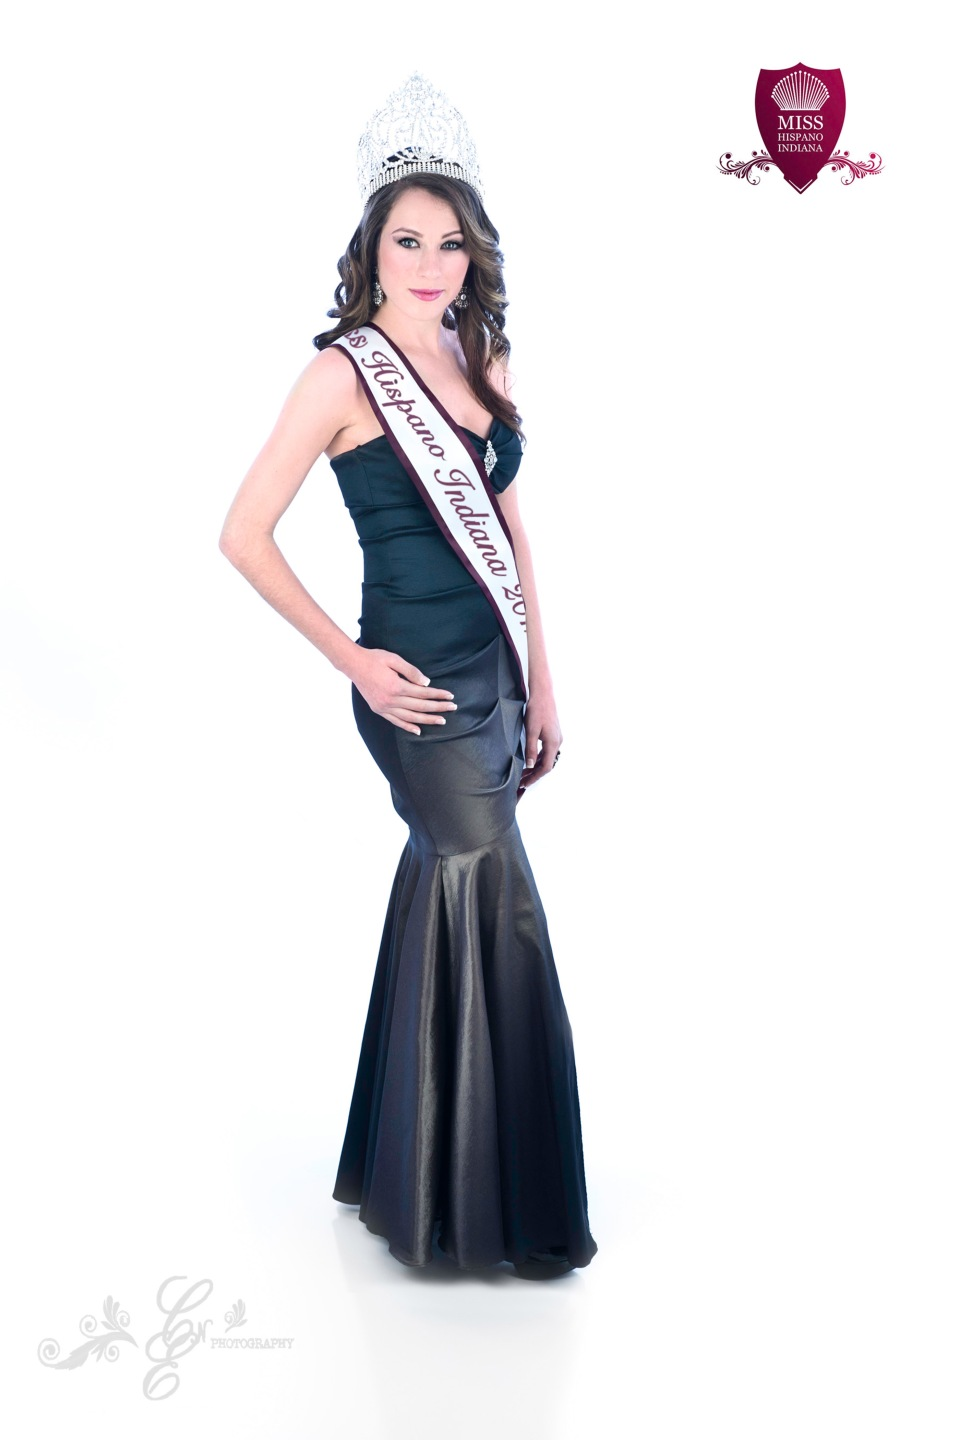 Marisol Romo Miss Hispano Indiana